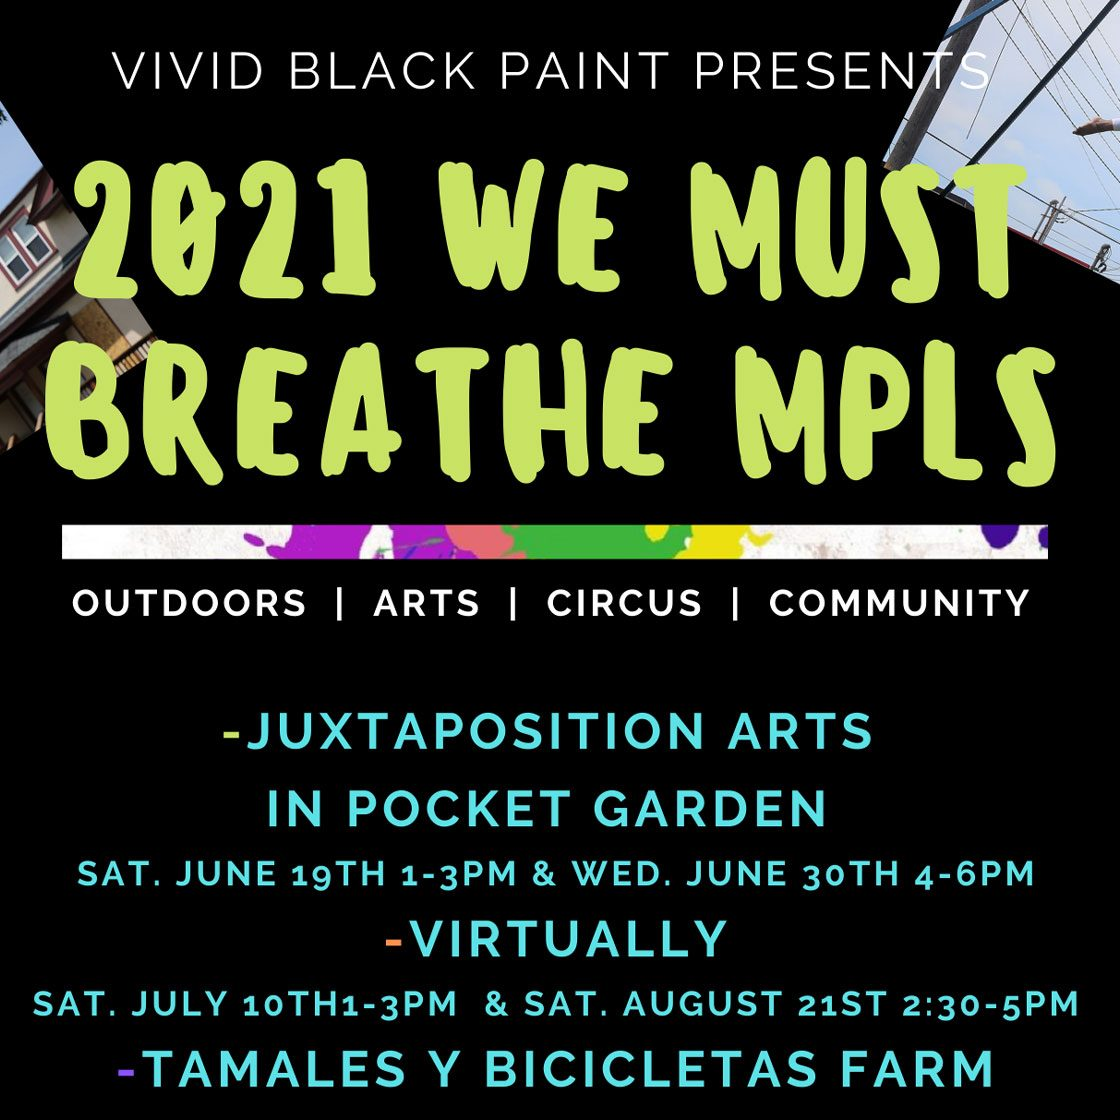 We must breathe circus pop up